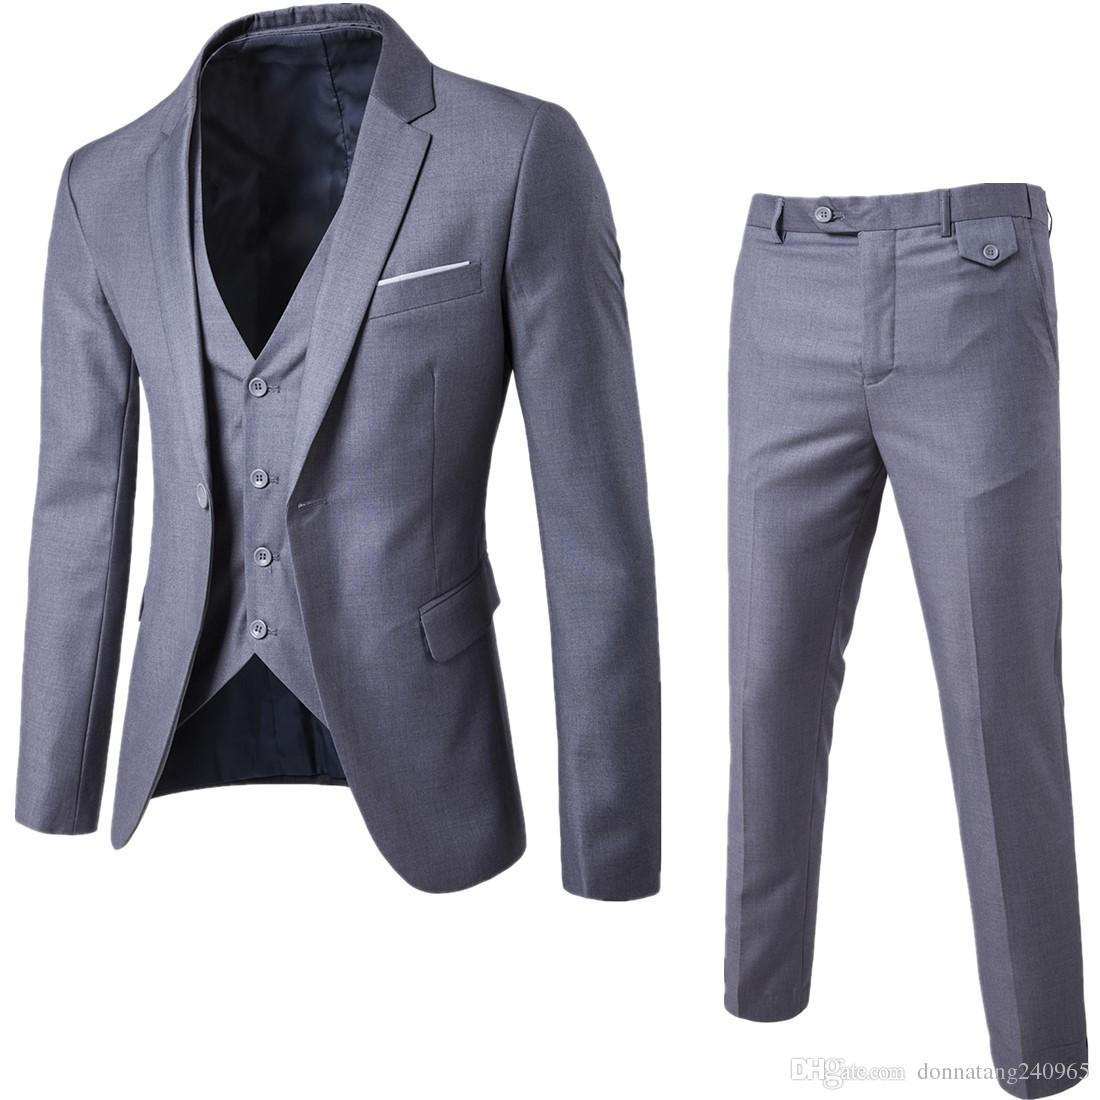 2020 2018 New Fashion Designer Men Suit Groom Tuxedos Groomsmen Side Vent Slim Fit Best Man Suit Wedding Mens Suits Bridegroom Jacket Pant Vest From Donnatang240965 59 02 Dhgate Com